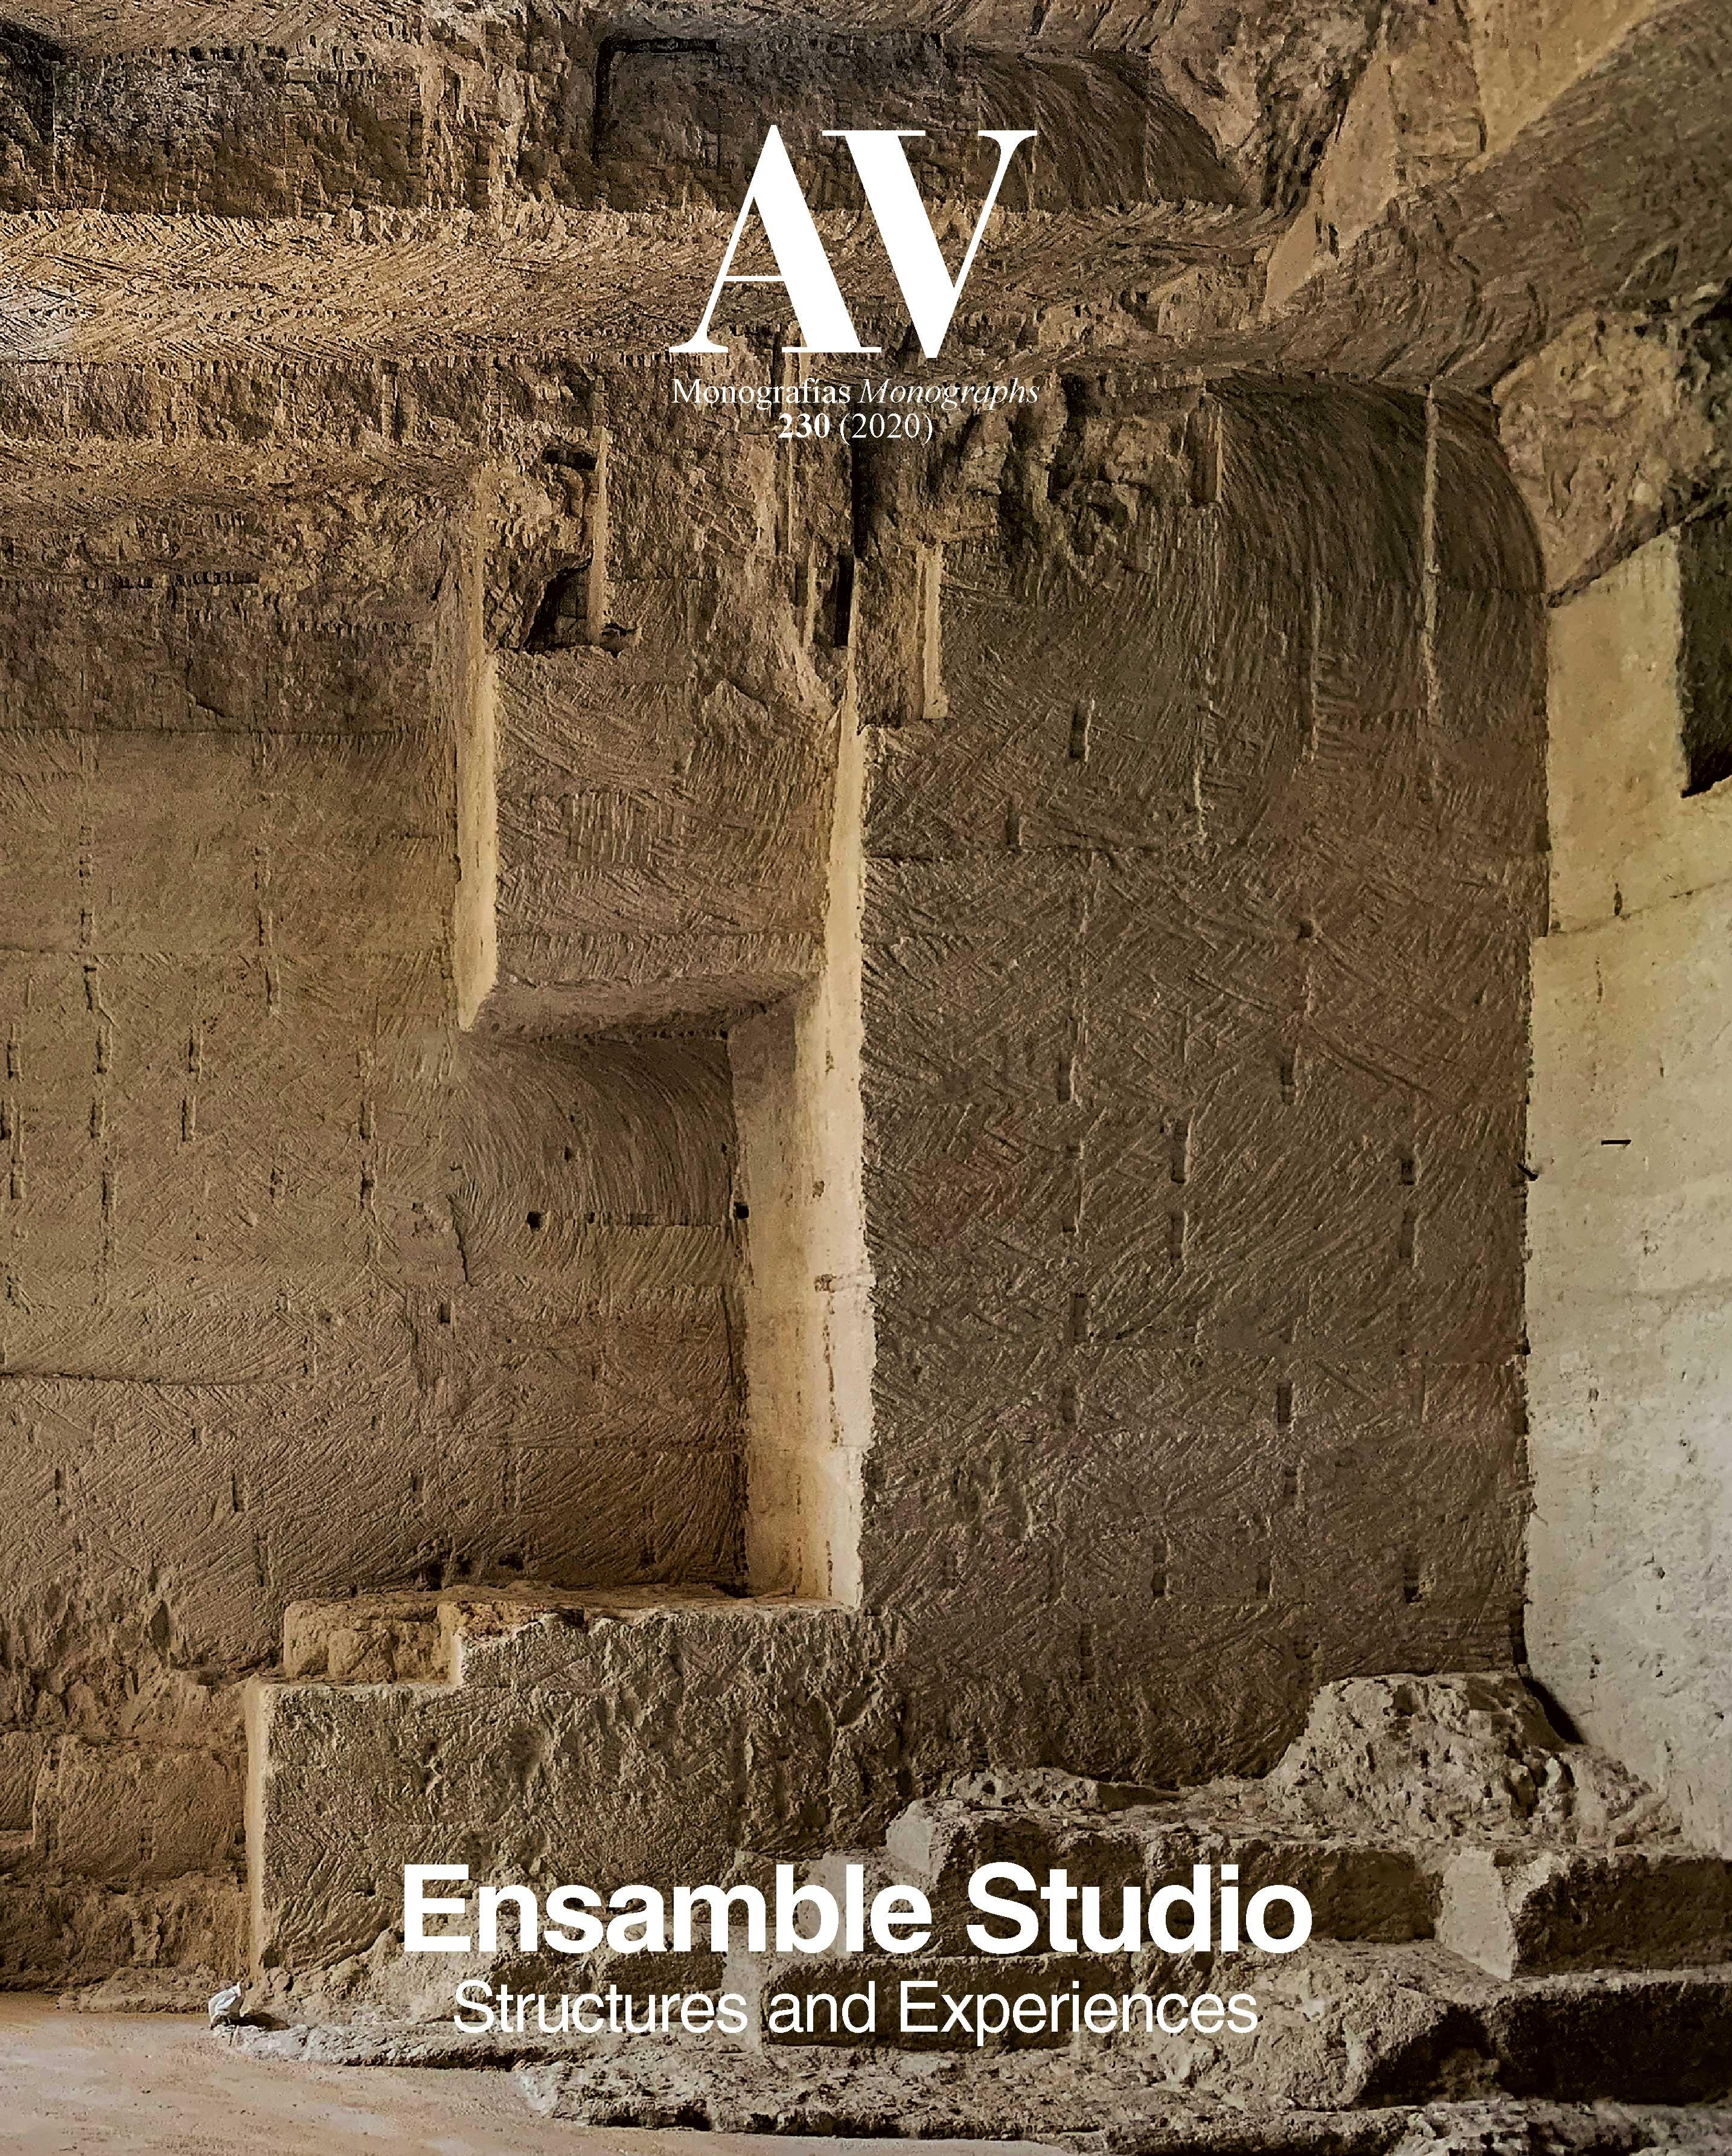 ENSAMBLE STUDIO:  AV Nº230. ENSAMBLE STUDIO